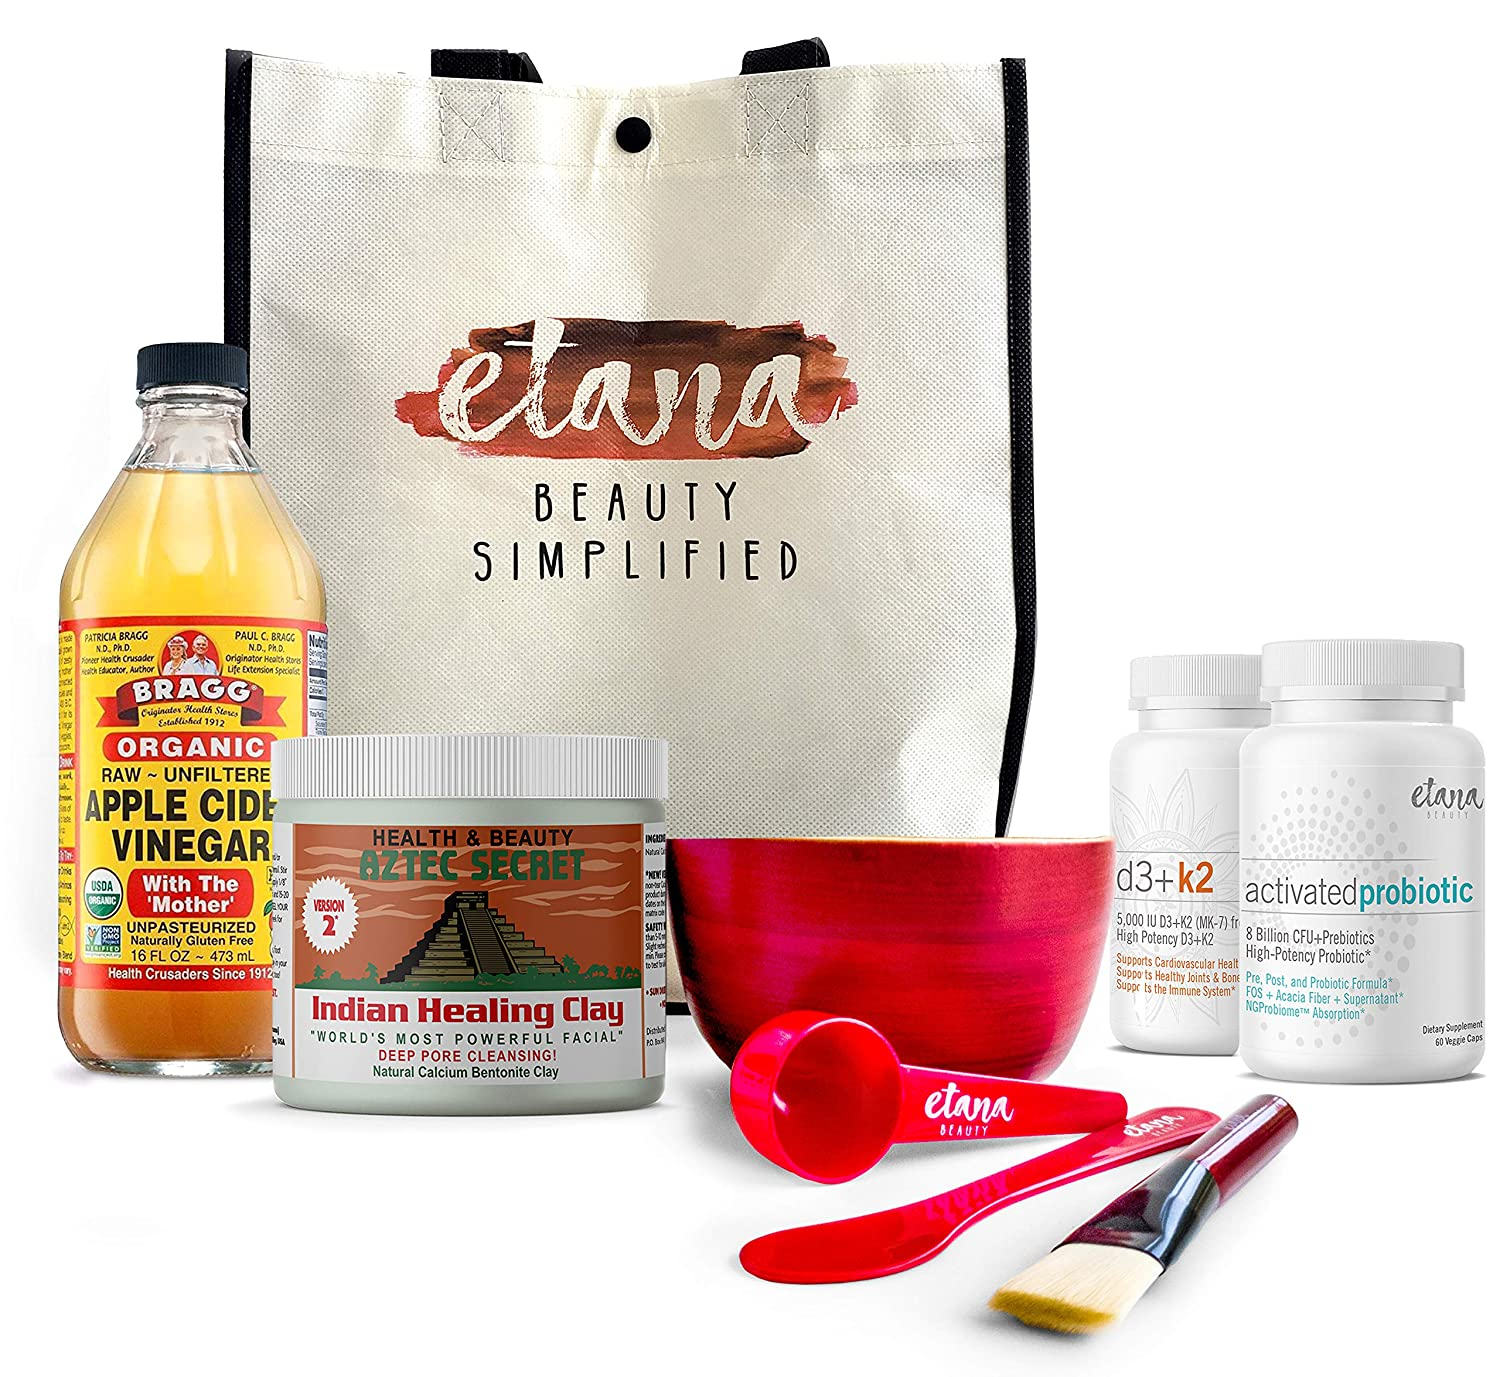 Etana Beauty Bundle - Aztec Clay Premium Mask Set – 1lb Aztec Secret Indian Healing Clay, 16oz Bragg's Apple Cider Vinegar, Mixing Utensils & Reusable Tote PLUS Activated Probiotic & D3+K2 Supplements